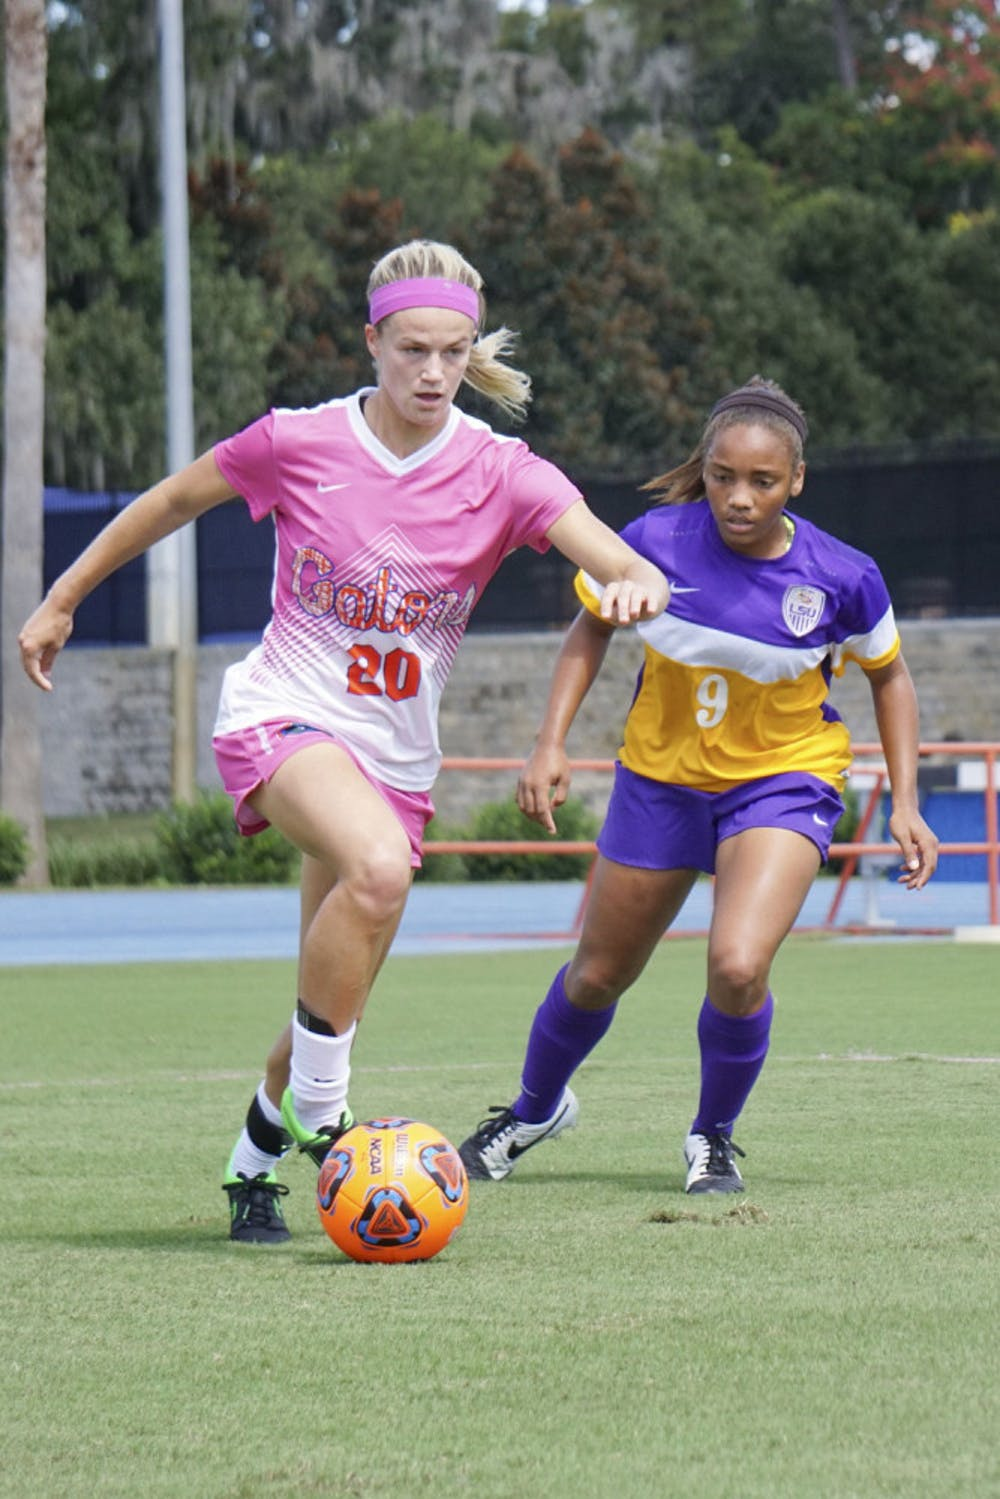 <p>UF defender Christen Westphal dribbles during Florida&#x27;s 2-1 win against LSU on Oct. 11, 2015, at James G. Pressly Stadium. Wespthal now plays right-back for the Portland Thorns and is one of six former Gators playing professionally in the NWSL. </p>